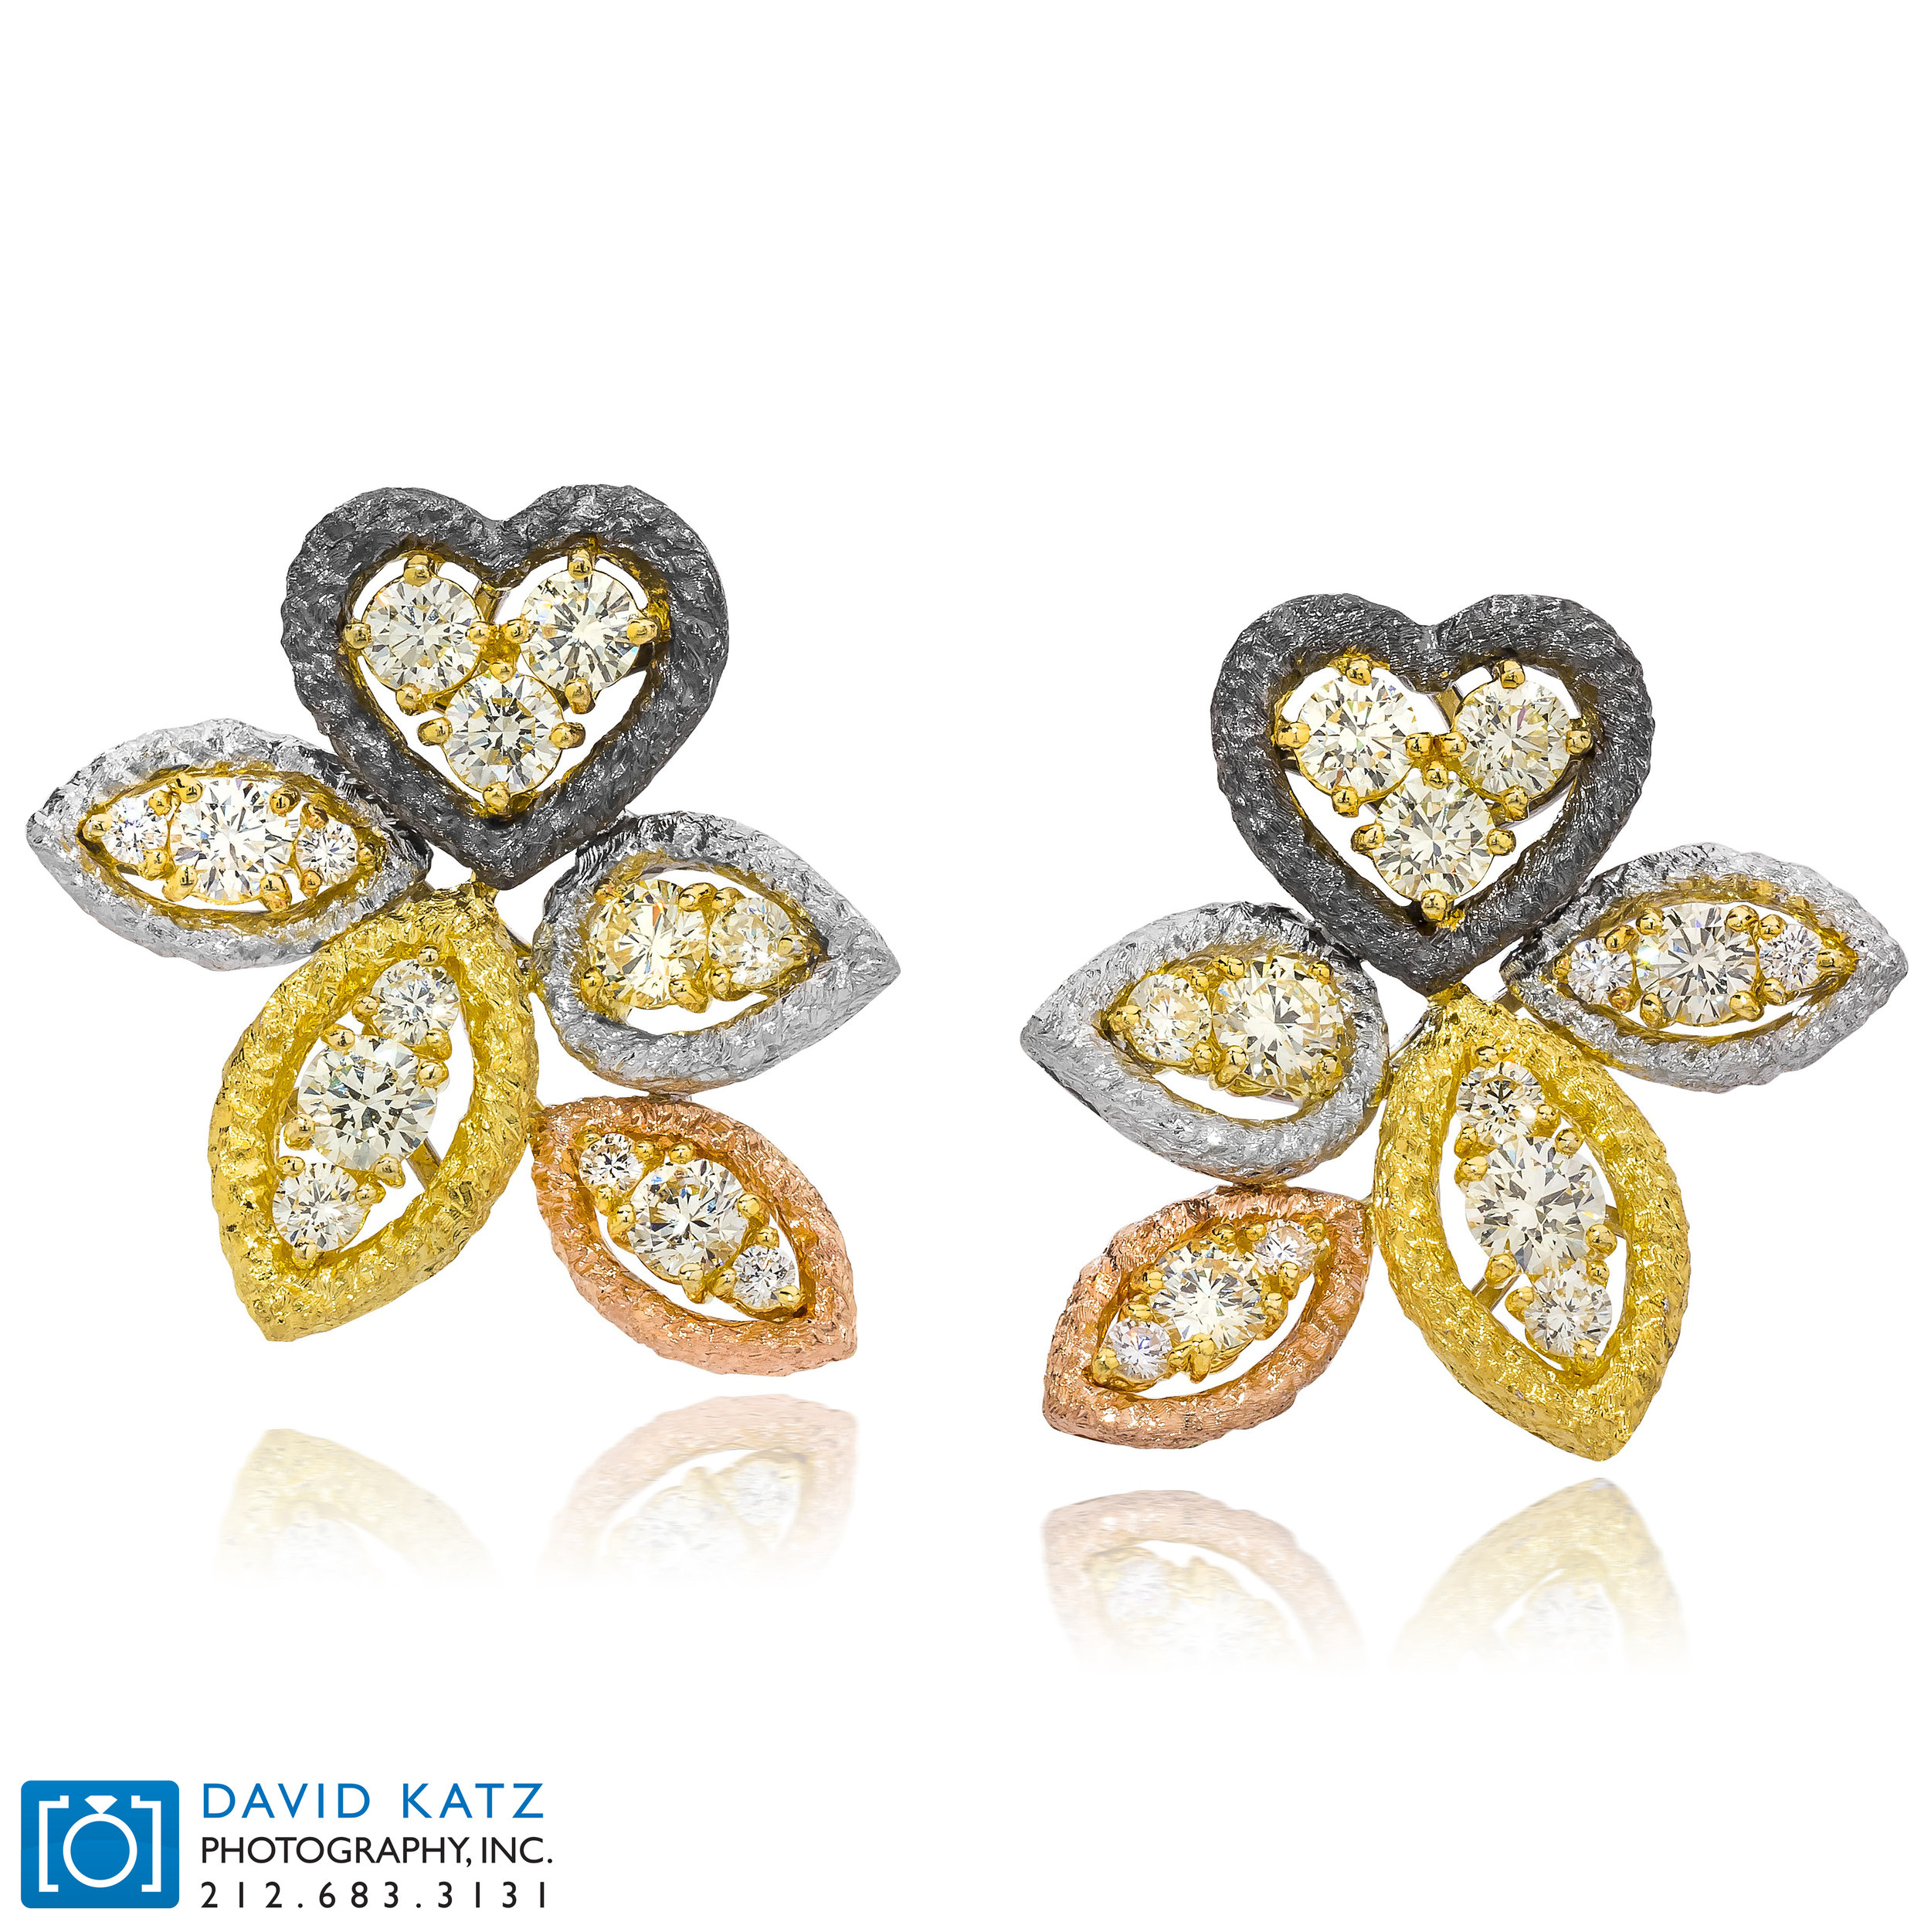 black gold silver diamond heart earrings_NEWLOGO.jpg